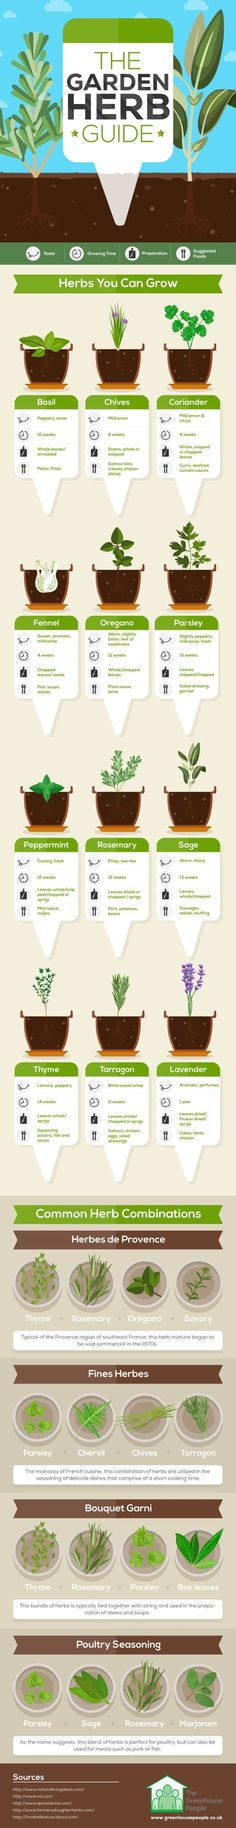 This One Infographic Will Change Your Homegrown Herb Game - http://HouseBeautiful.com